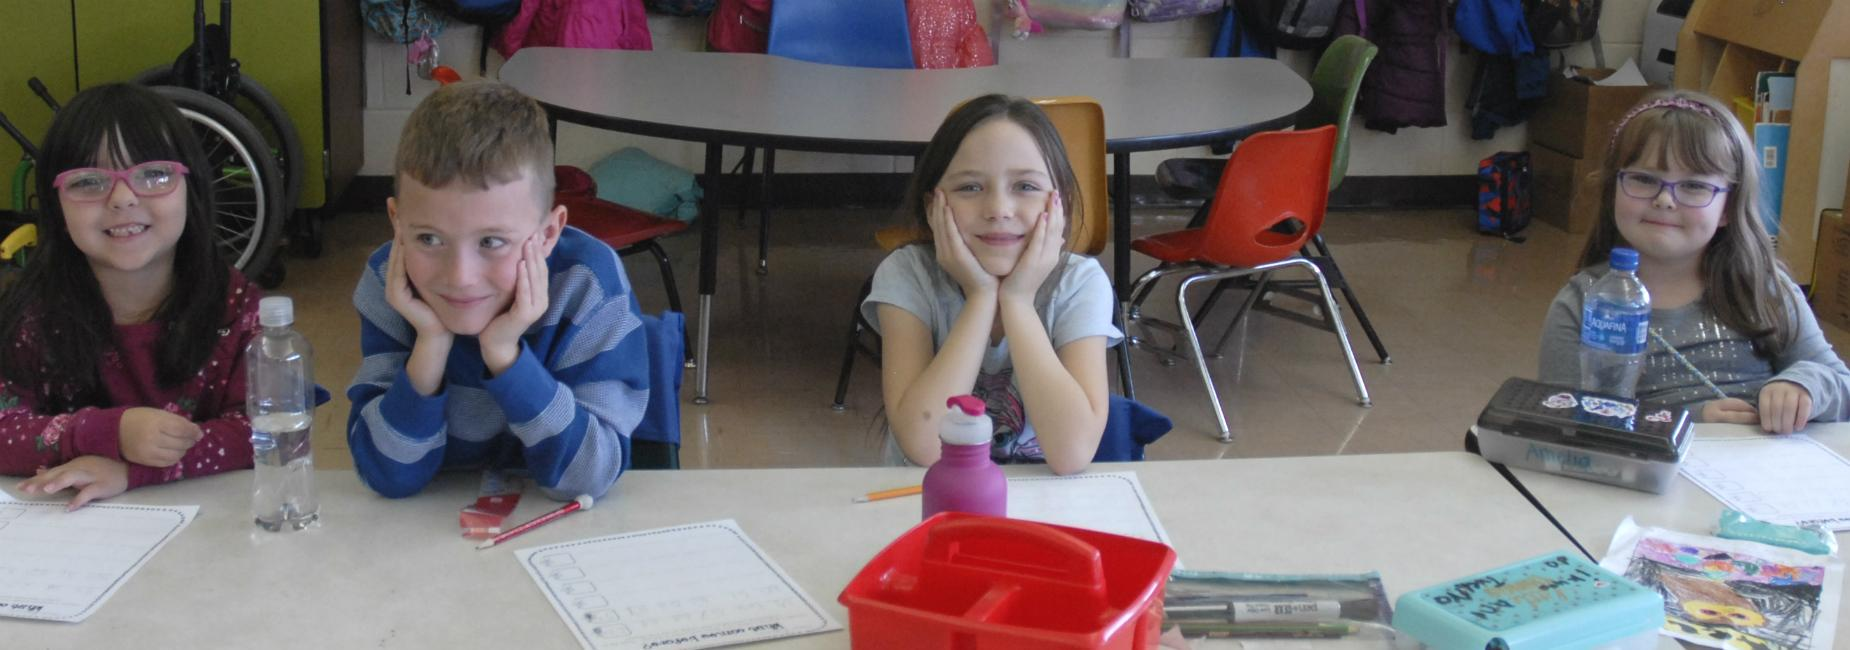 Four first grade students seated at their desks, smiling for camera.